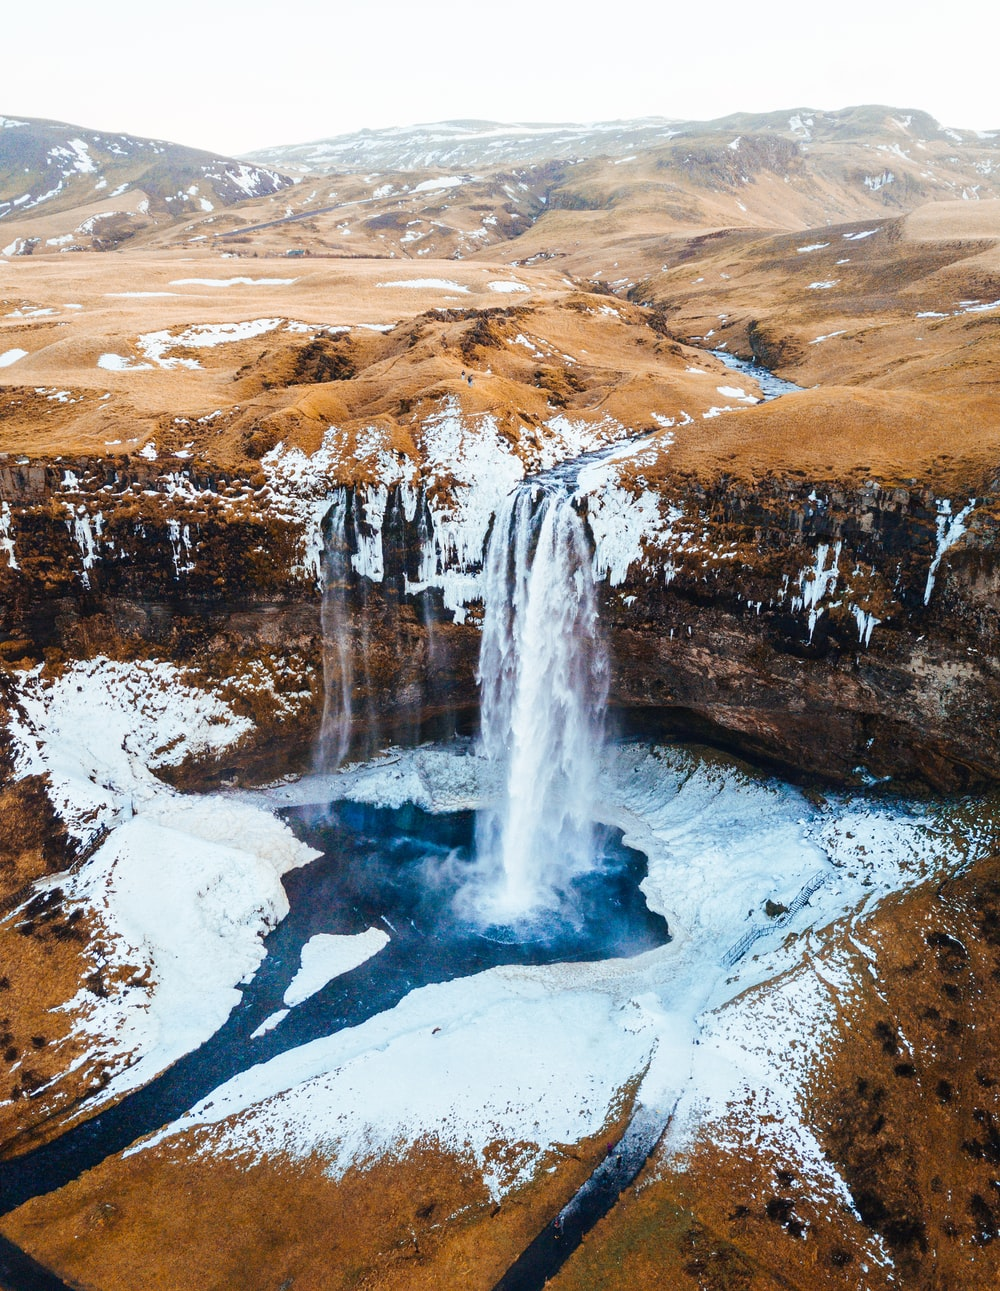 aerial photography of waterfalls near mountains at daytime